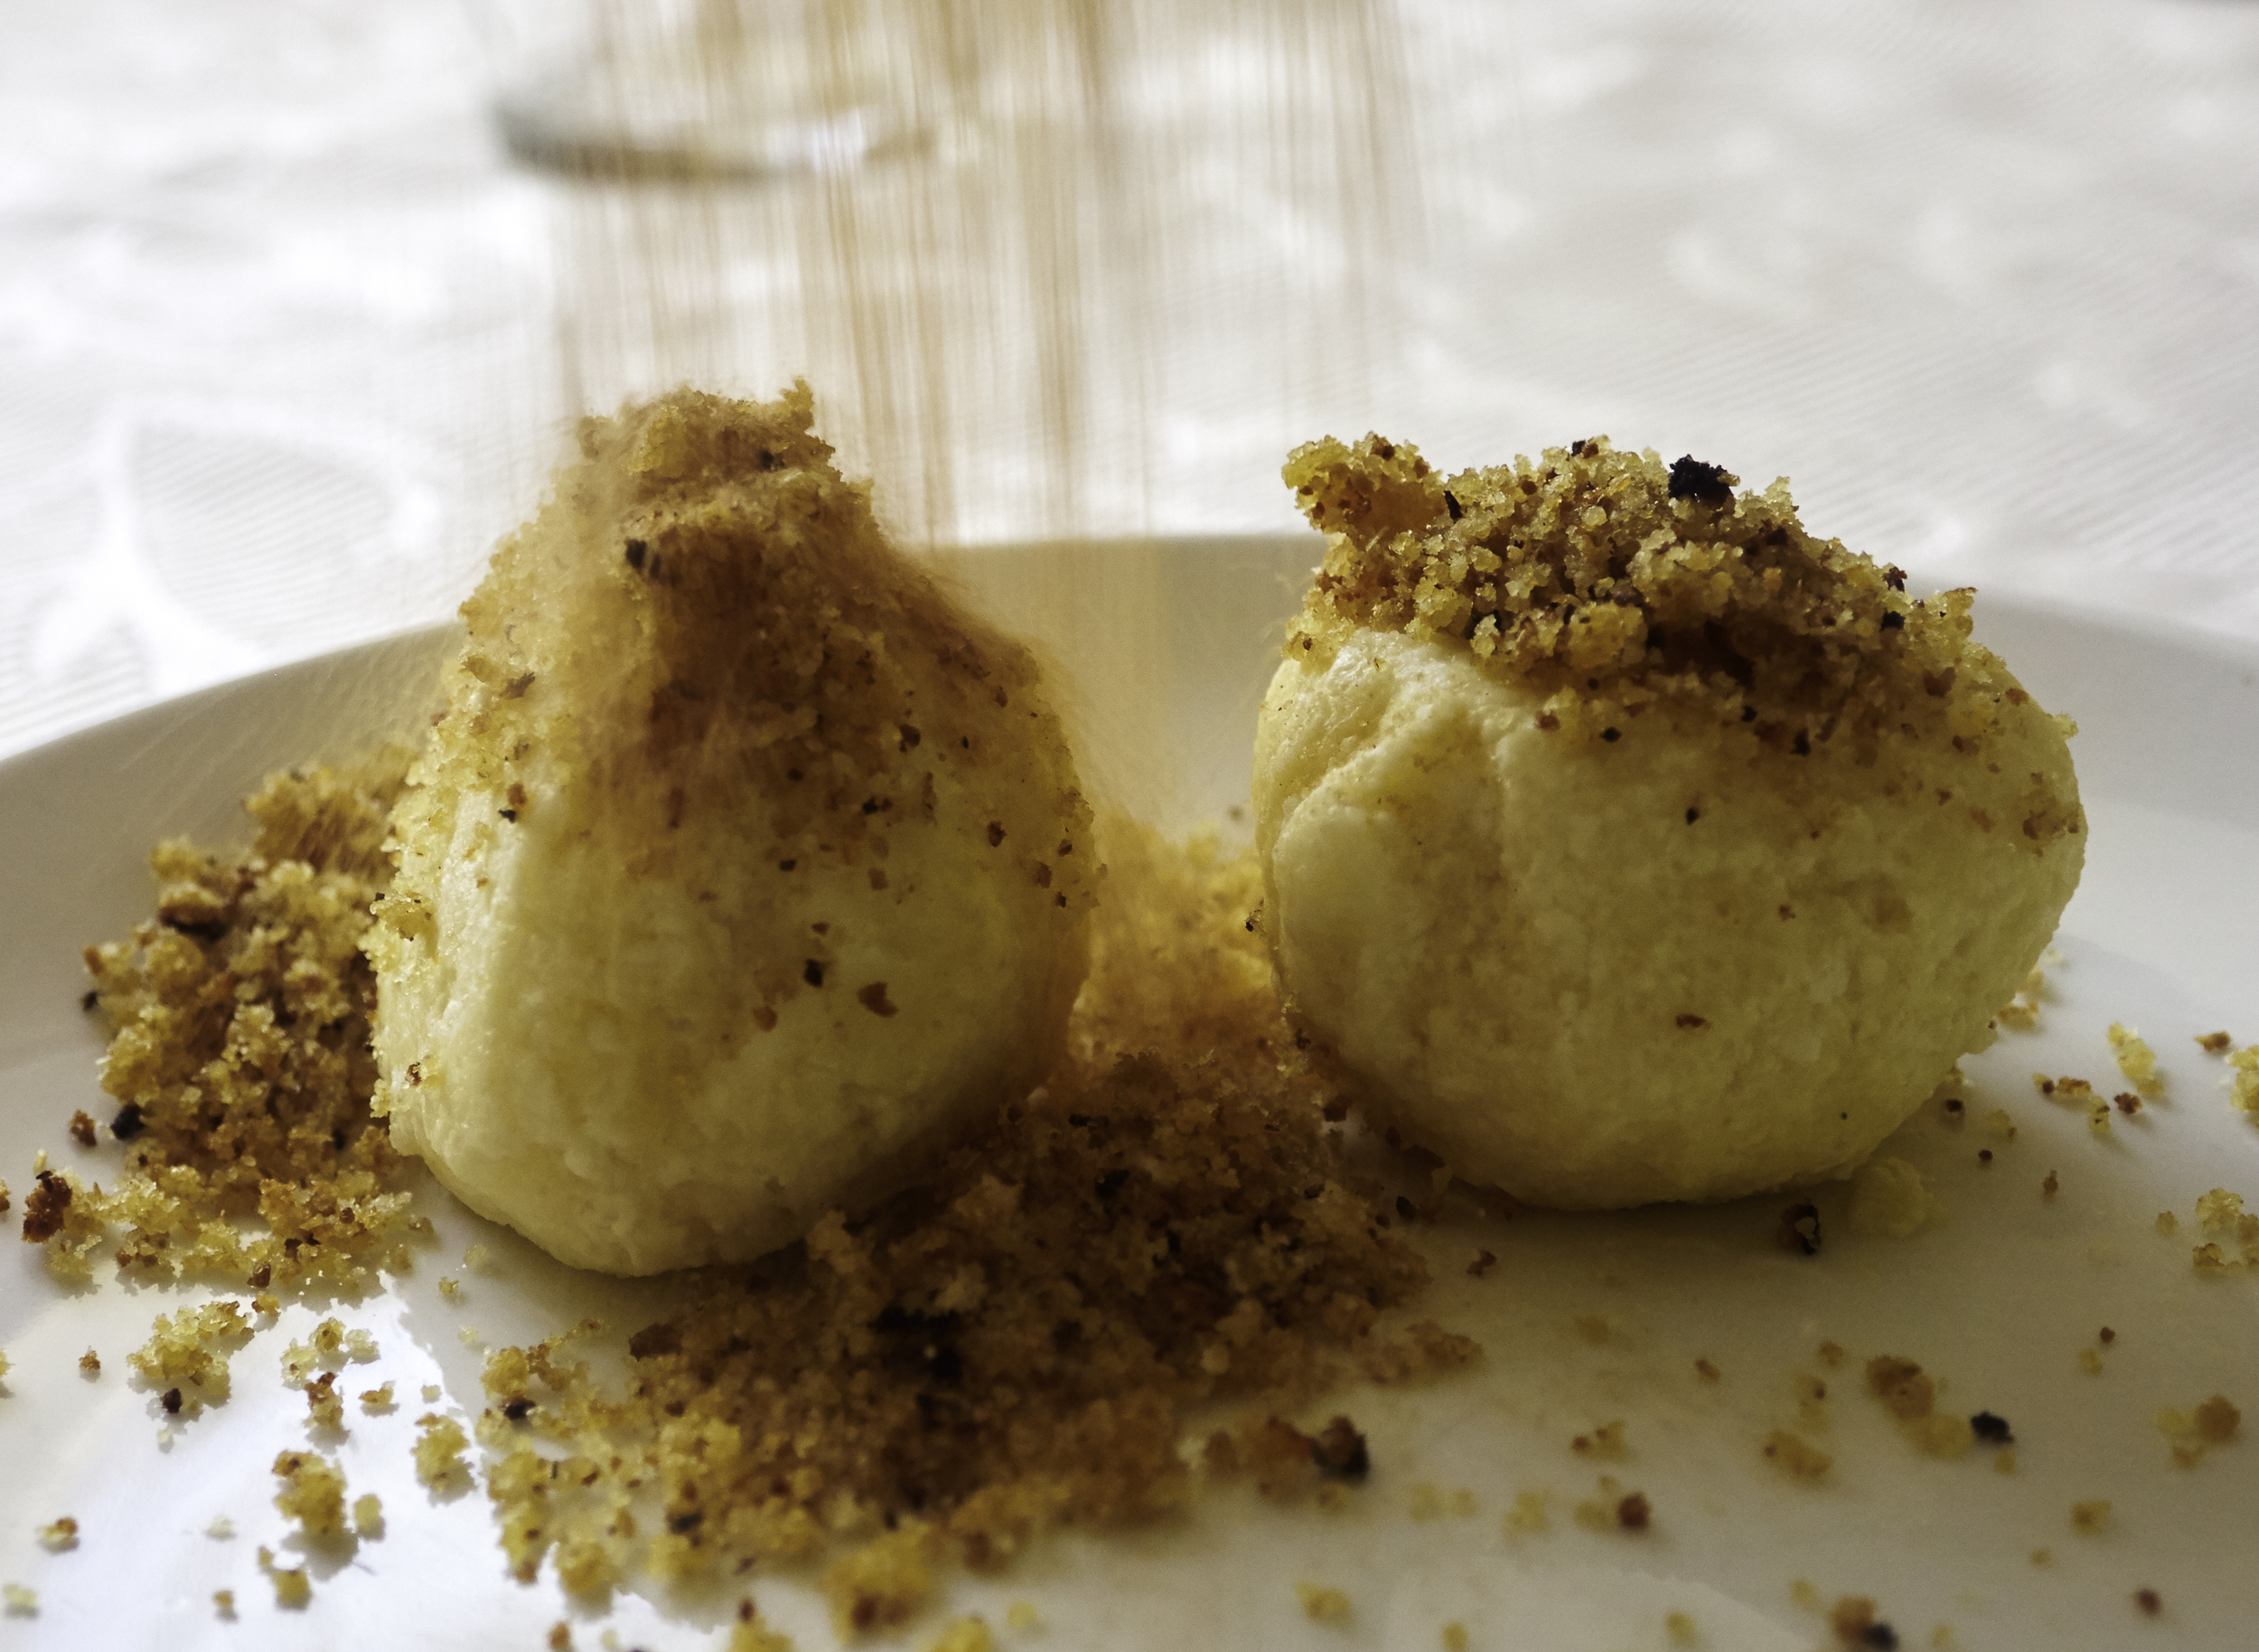 Ricotta dumplings with fried breadcrumbs, cinnamon and sugar.